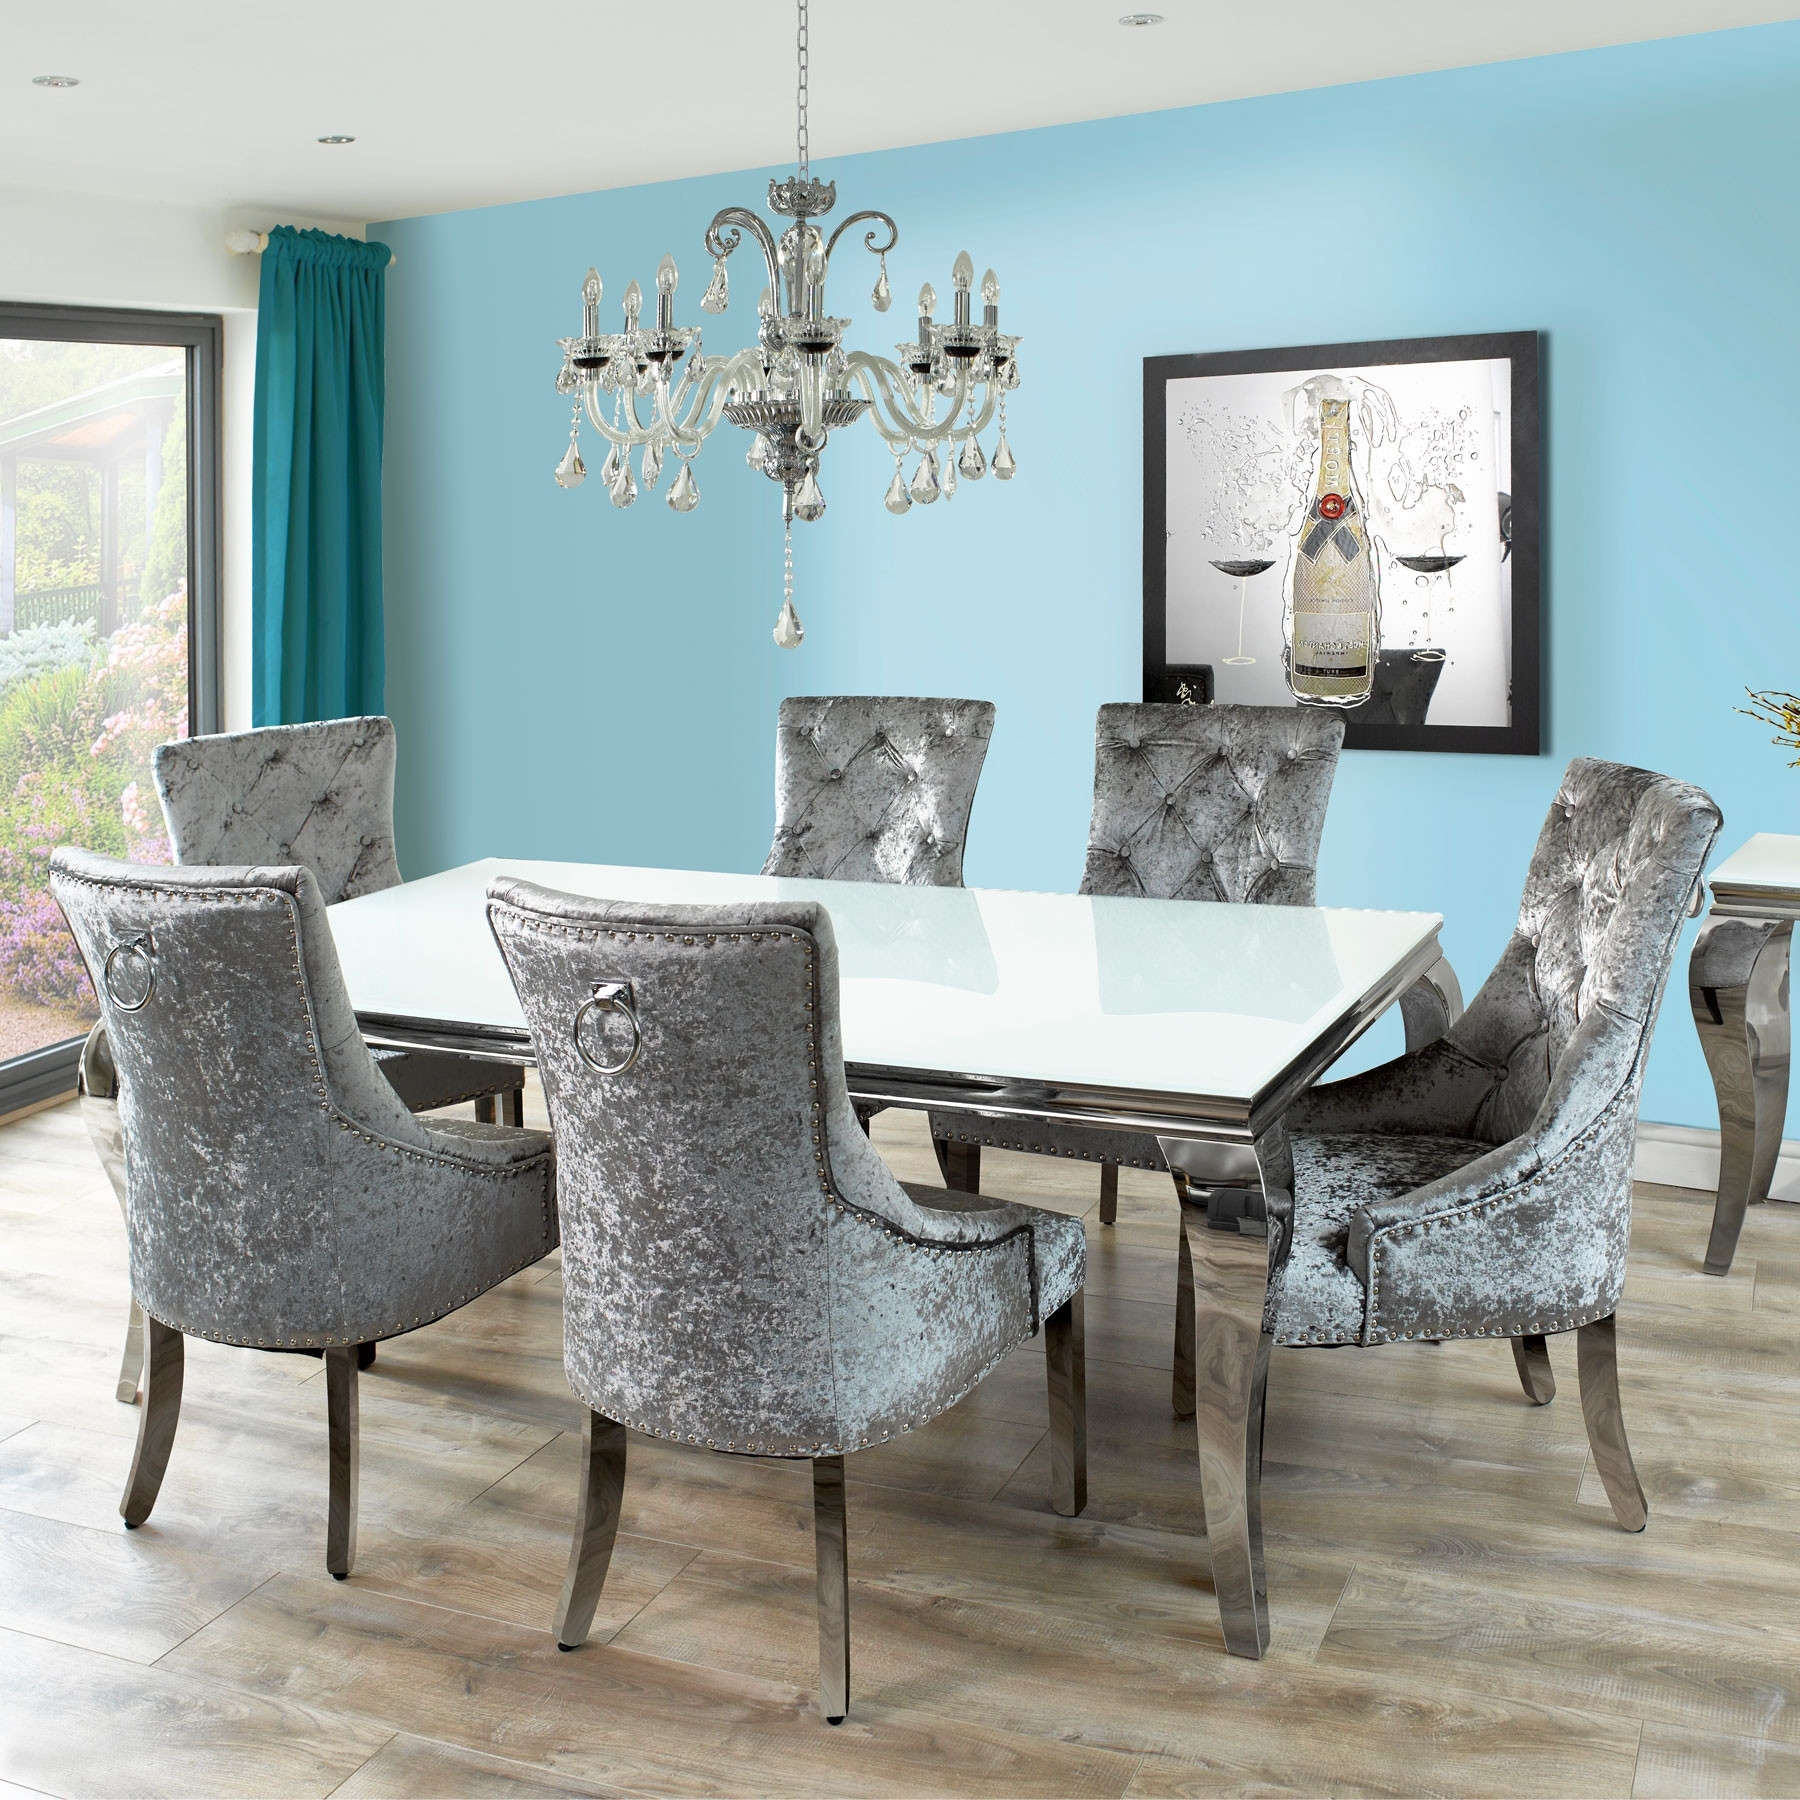 Best And Newest Grey Glass Dining Tables Pertaining To Fadenza White Glass Dining Table & 6 Silver Chairs With Knocker And (View 3 of 25)